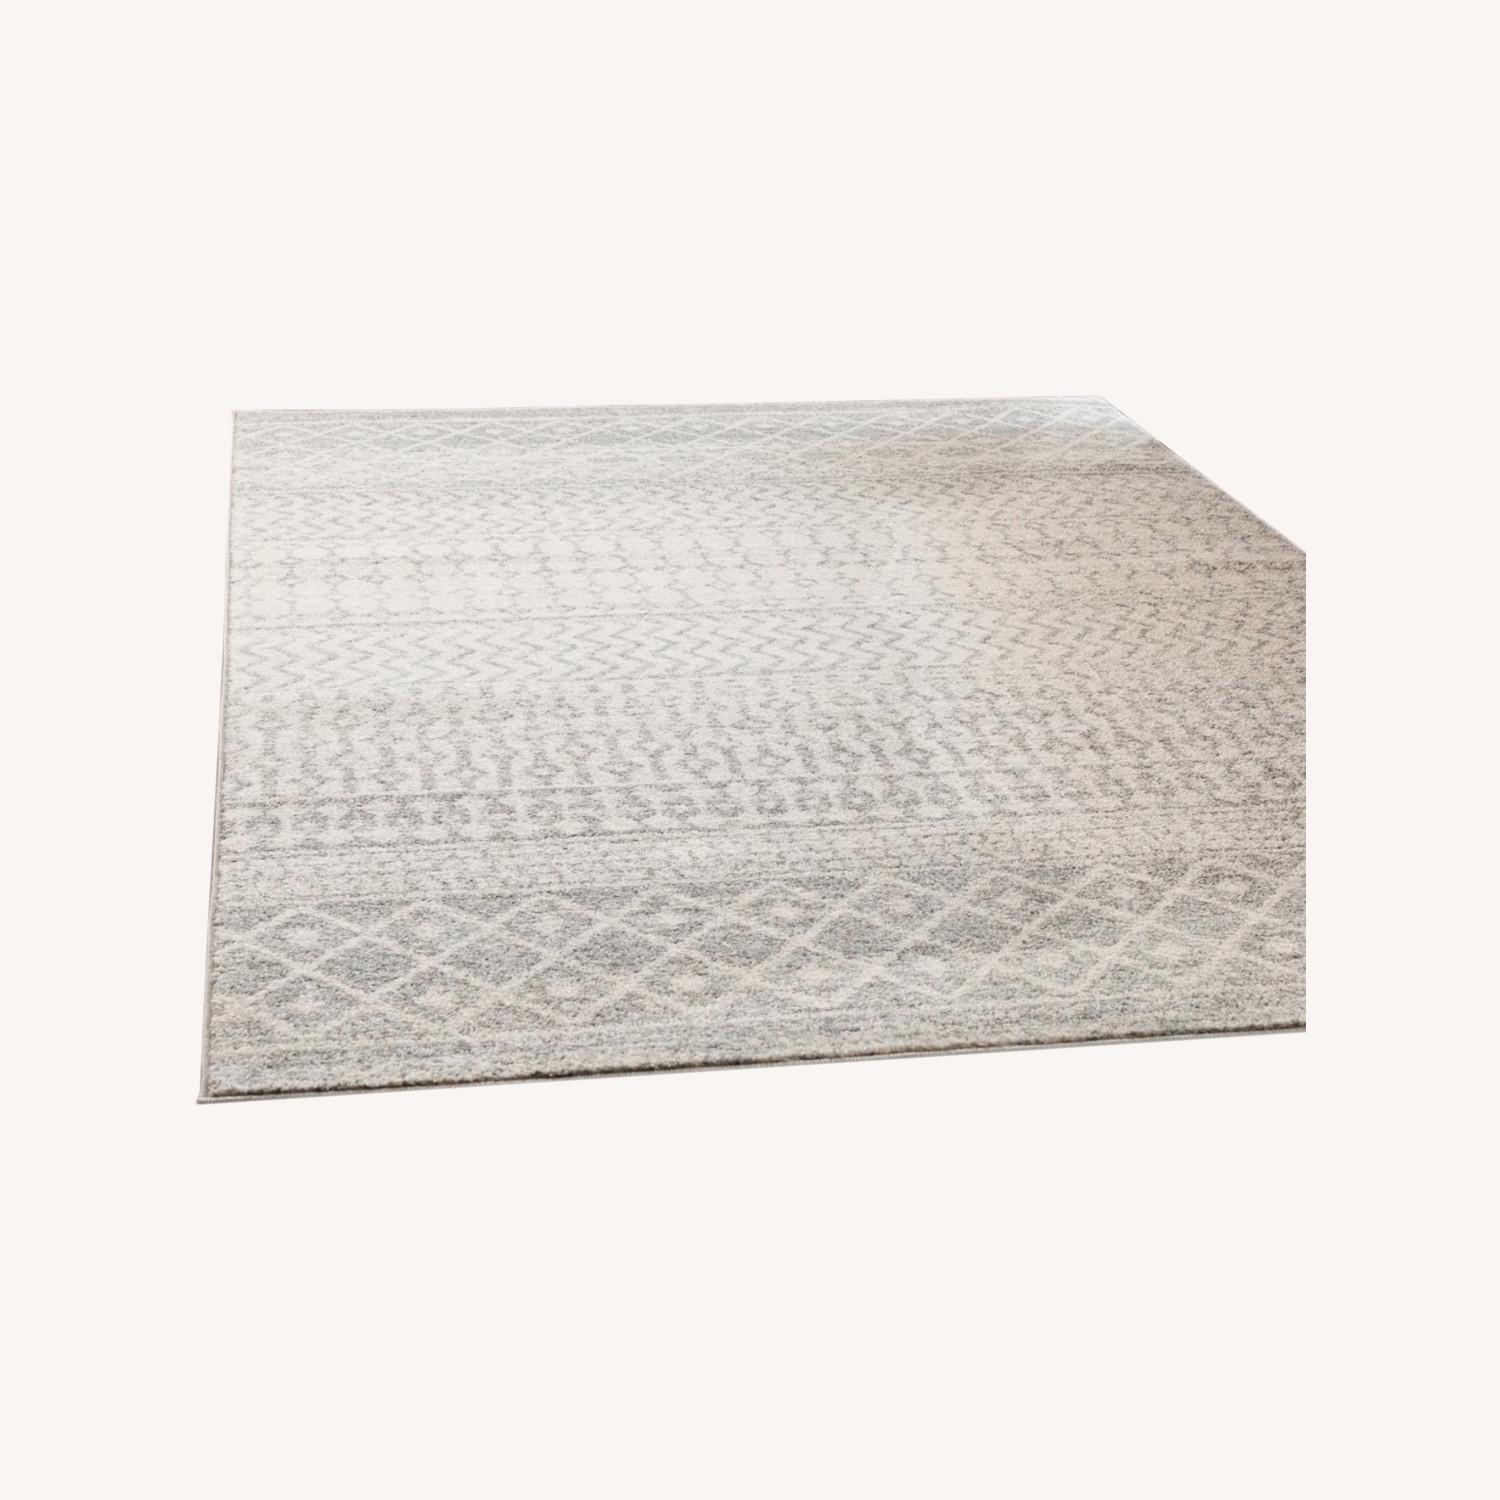 Bohemian Area Rug Antique Silver on White - image-0